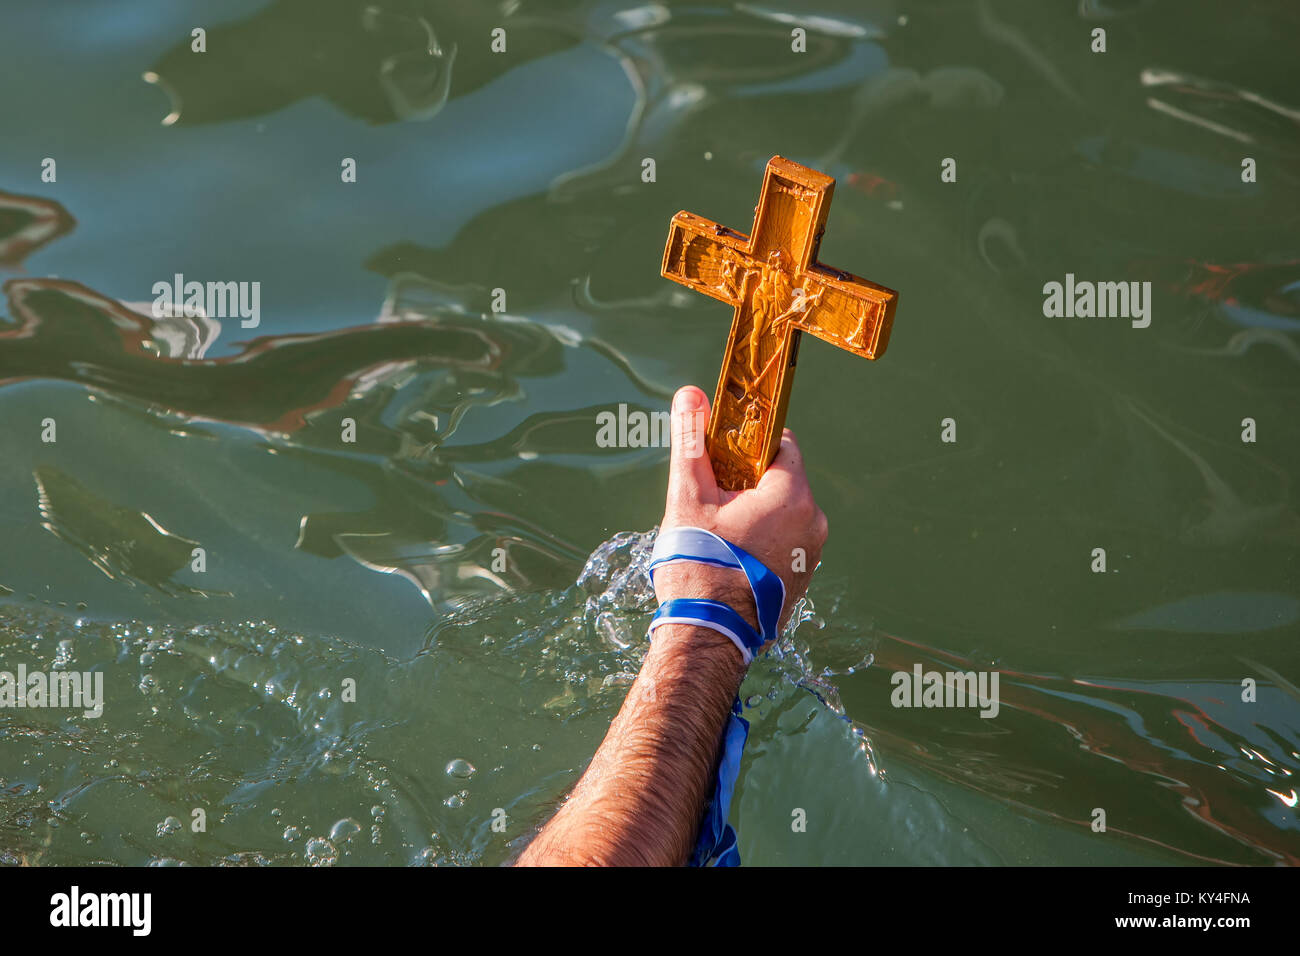 Thessaloniki, January 6, 2018: close-up shot of the hand that retrieves a wooden cross in the sea, at the blessing - Stock Image